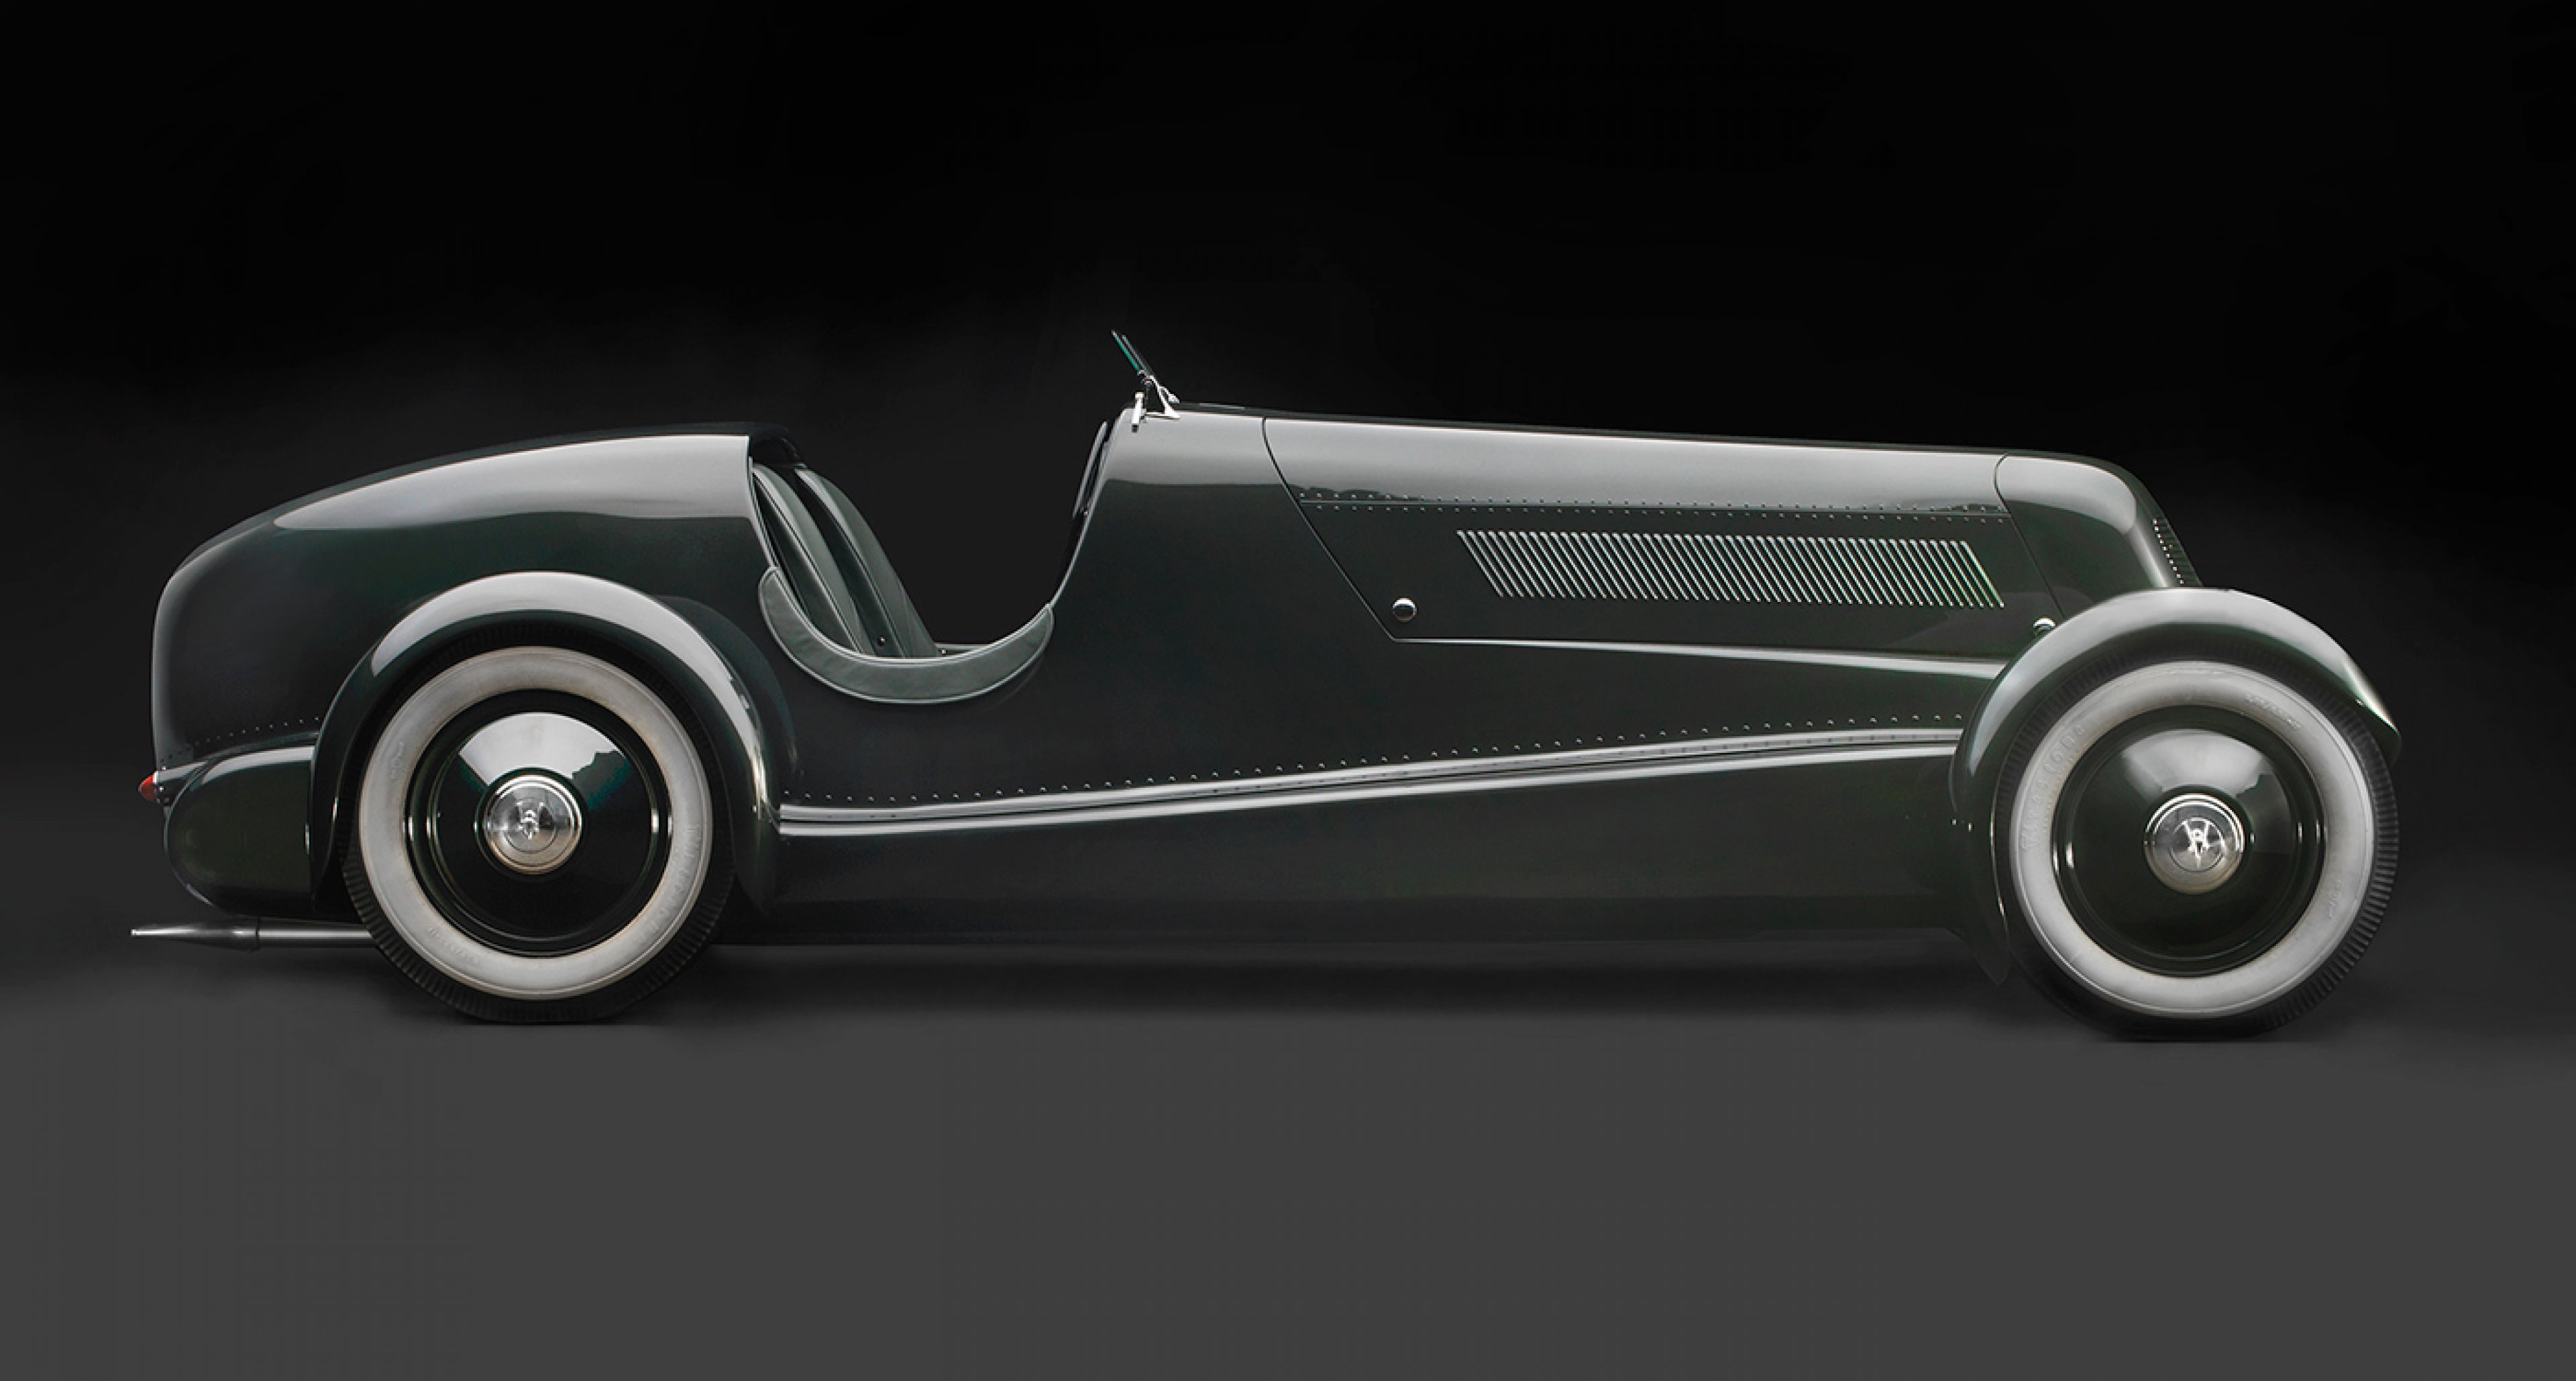 Edsel Ford's Model 40 Speedster, 1934, Courtesy of the Edsel and Eleanor Ford House; Photo © 2016 Peter Harholdt